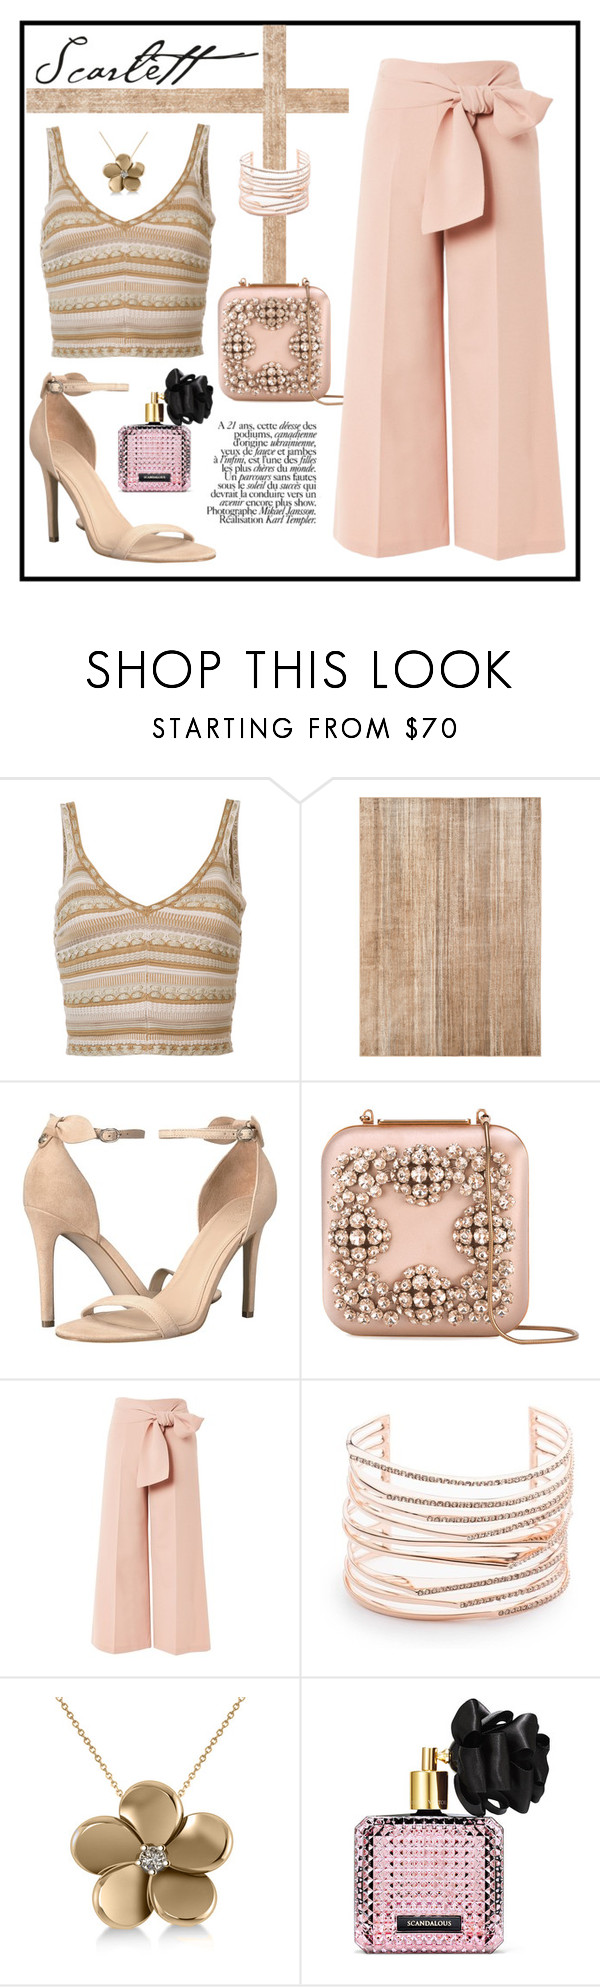 """""""THE SCARLETT LOOK"""" by taliafzl ❤ liked on Polyvore featuring Alice + Olivia, GUESS, Manolo Blahnik, Topshop, Alexis Bittar, Allurez and Victoria's Secret"""